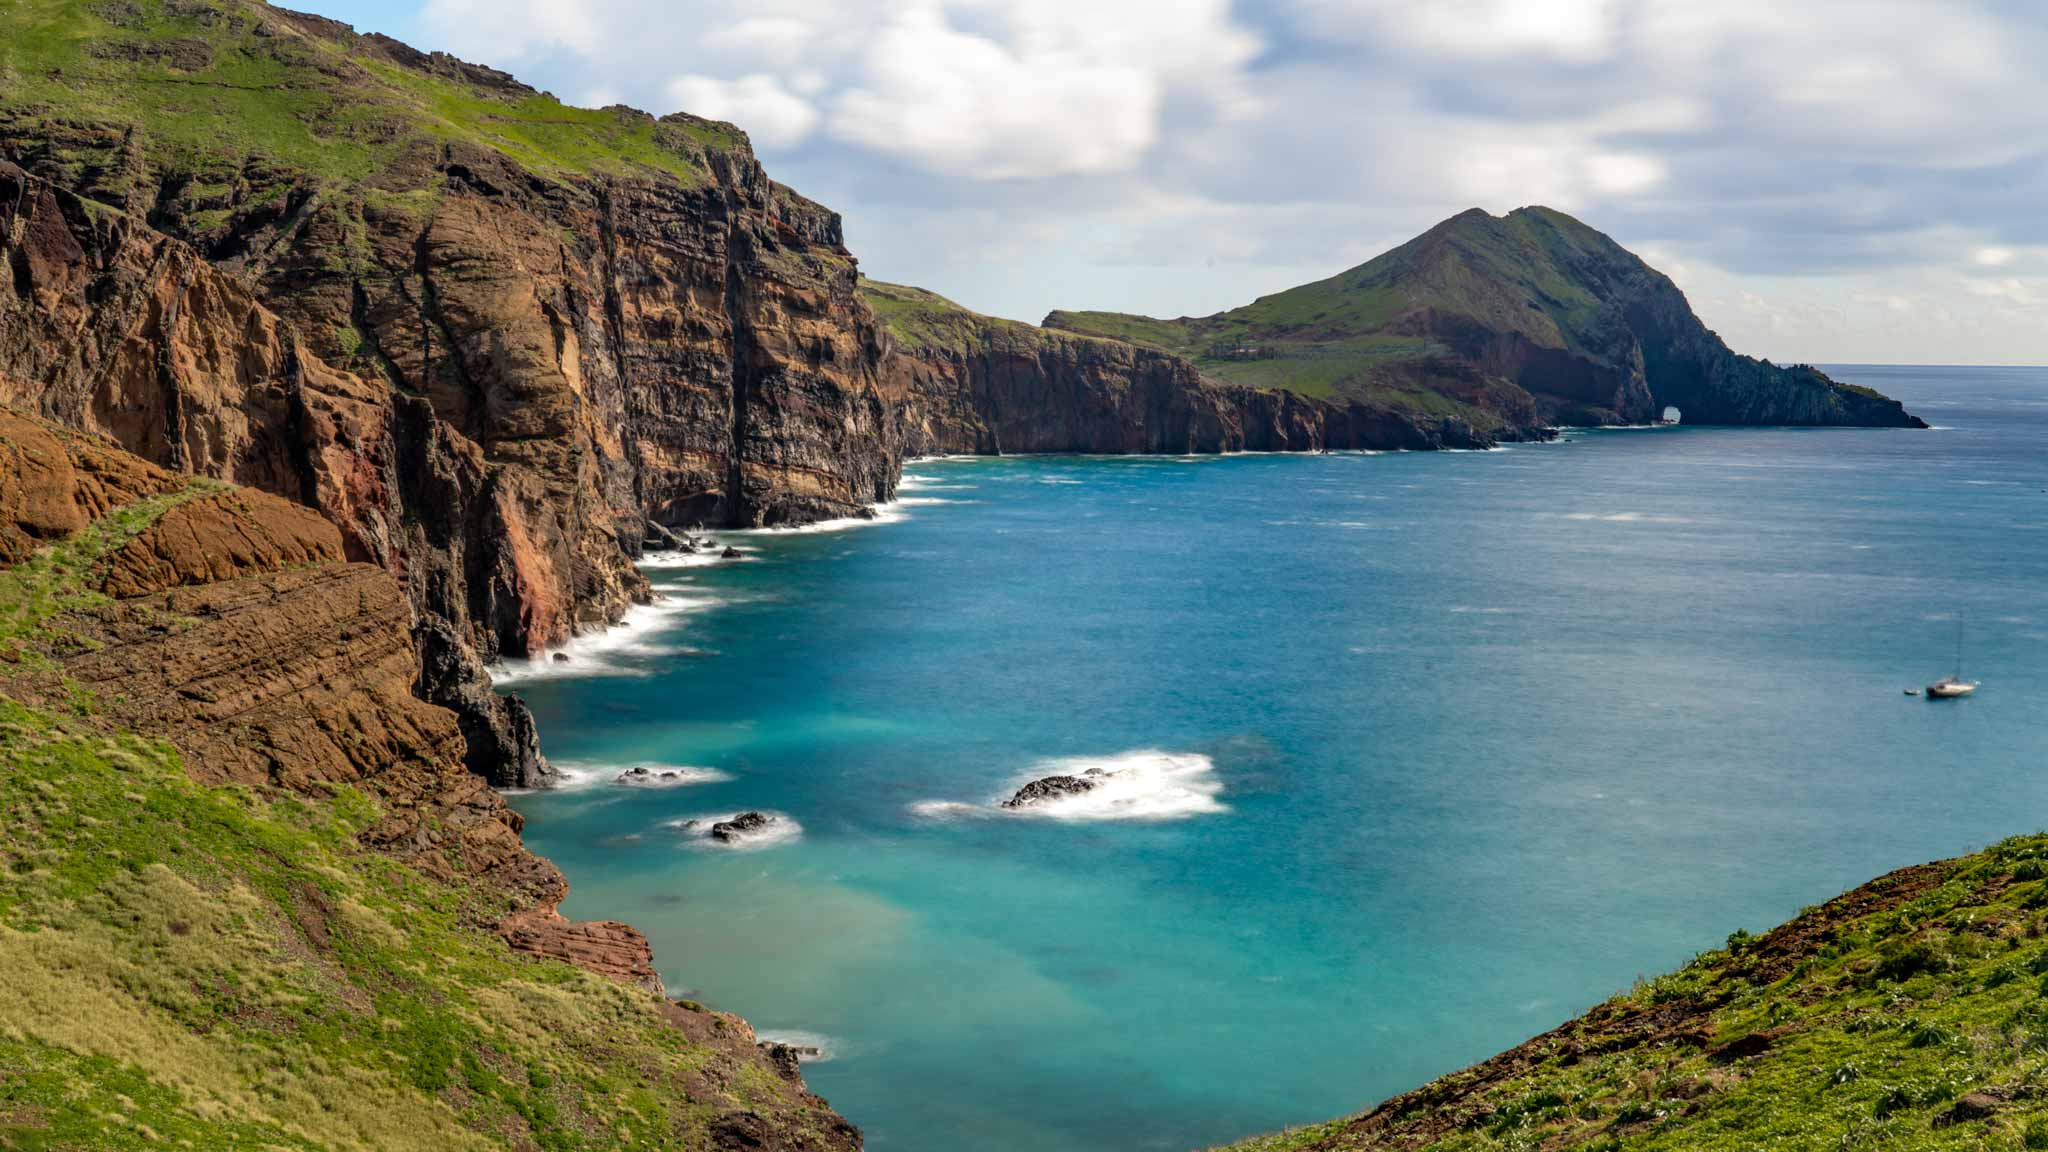 The trail out to Ponta de São Lourenço, with a beautiful blue ocean and green hills rising from the sea